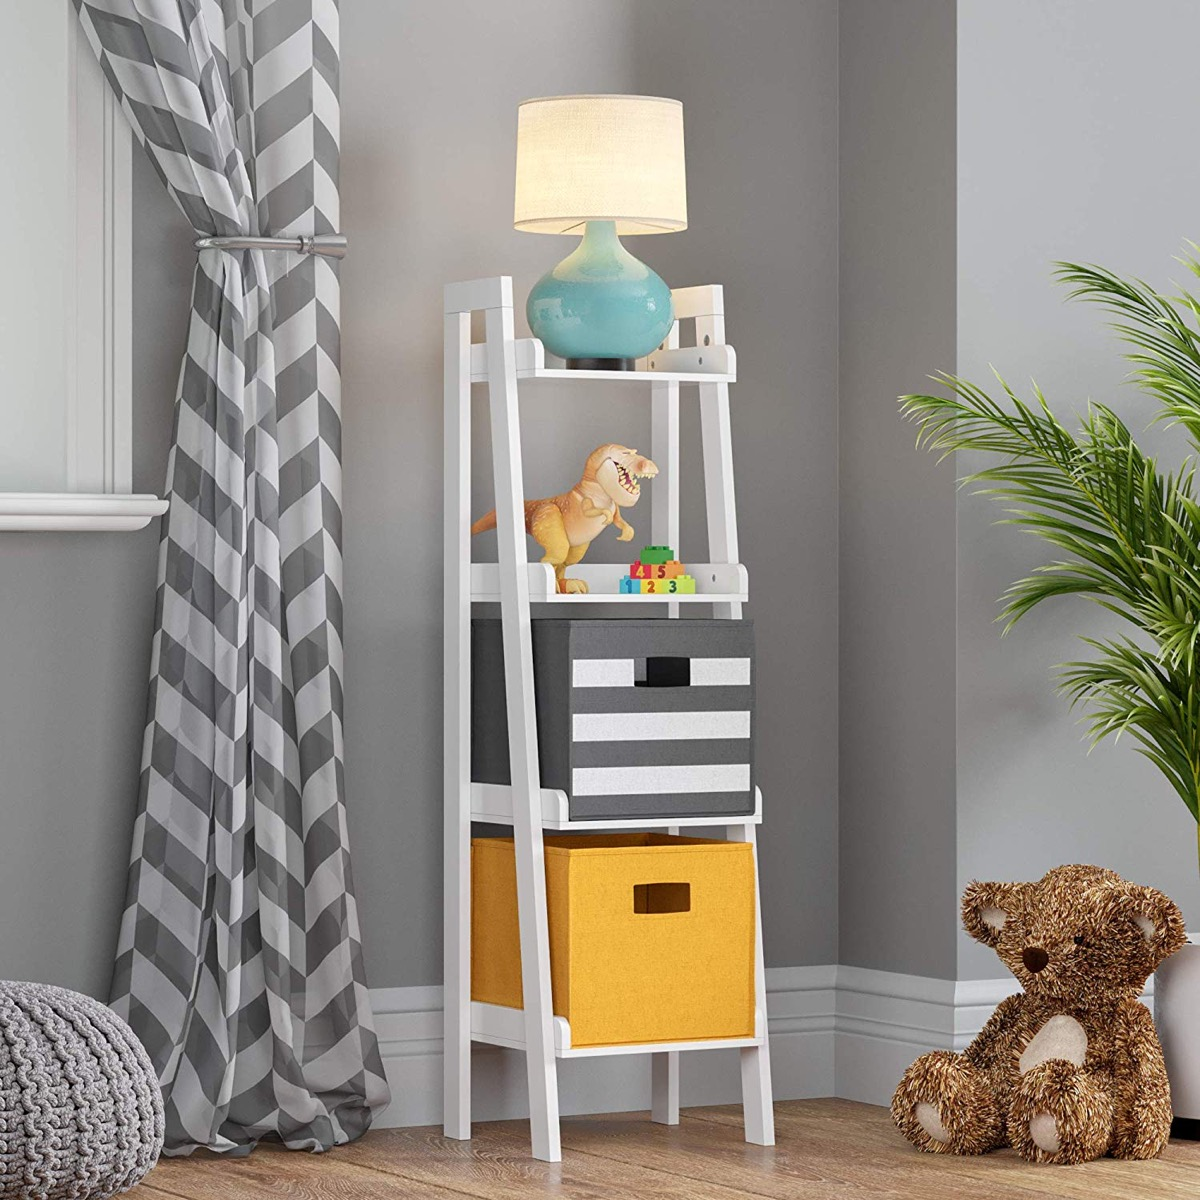 kids-room-ladder-shelf-white-non-tip-design